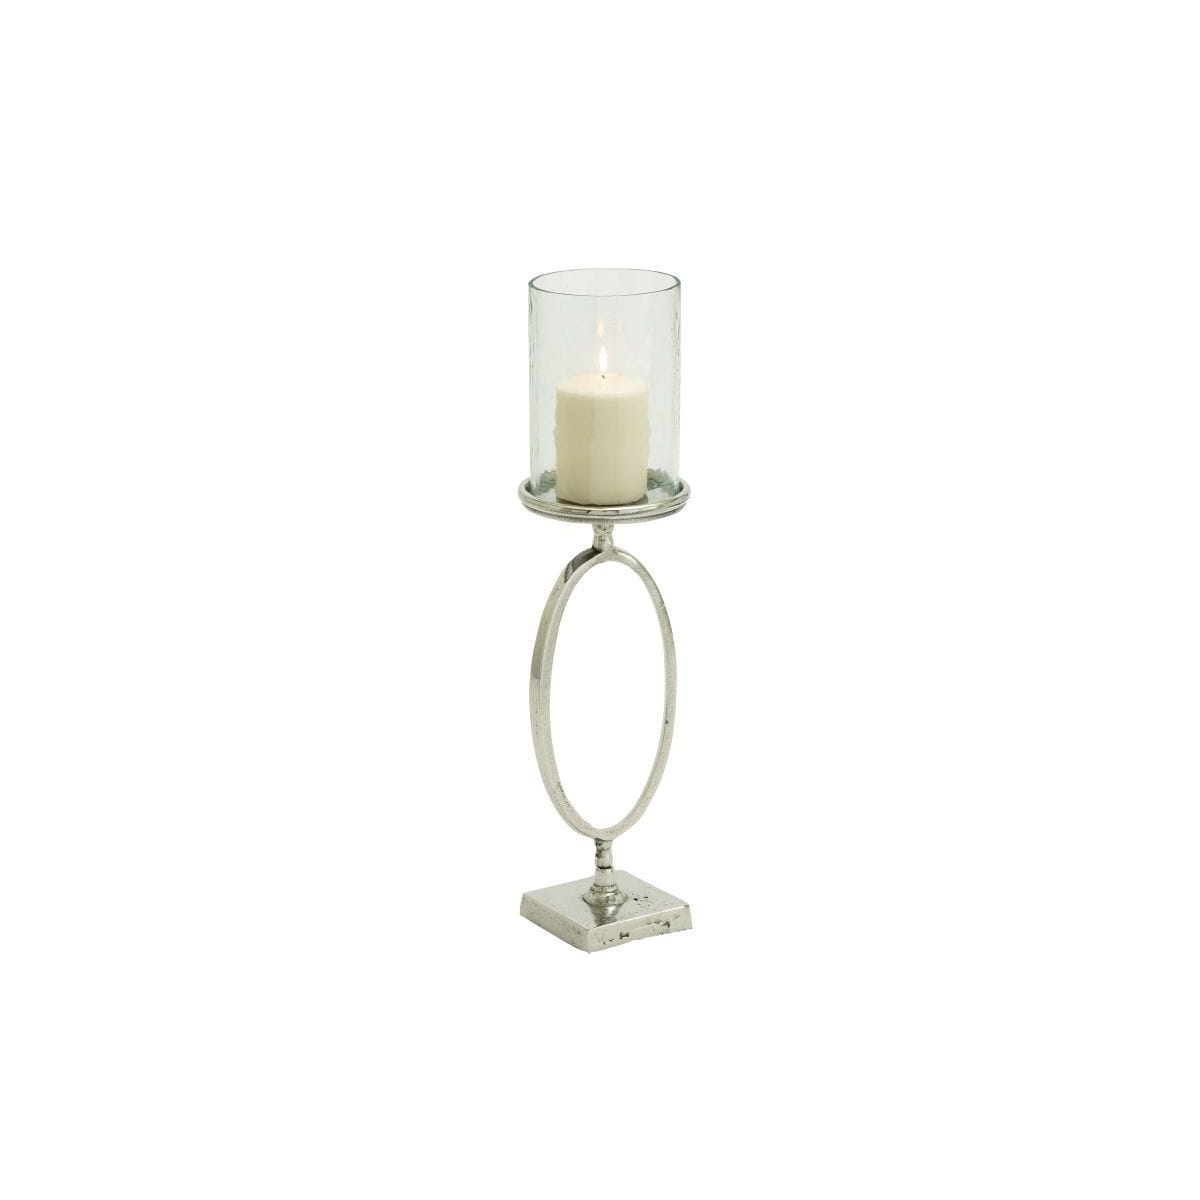 Aluminum/Glass 6-inch Wide x 22-inch High Hurricane Lamp Candle Holder